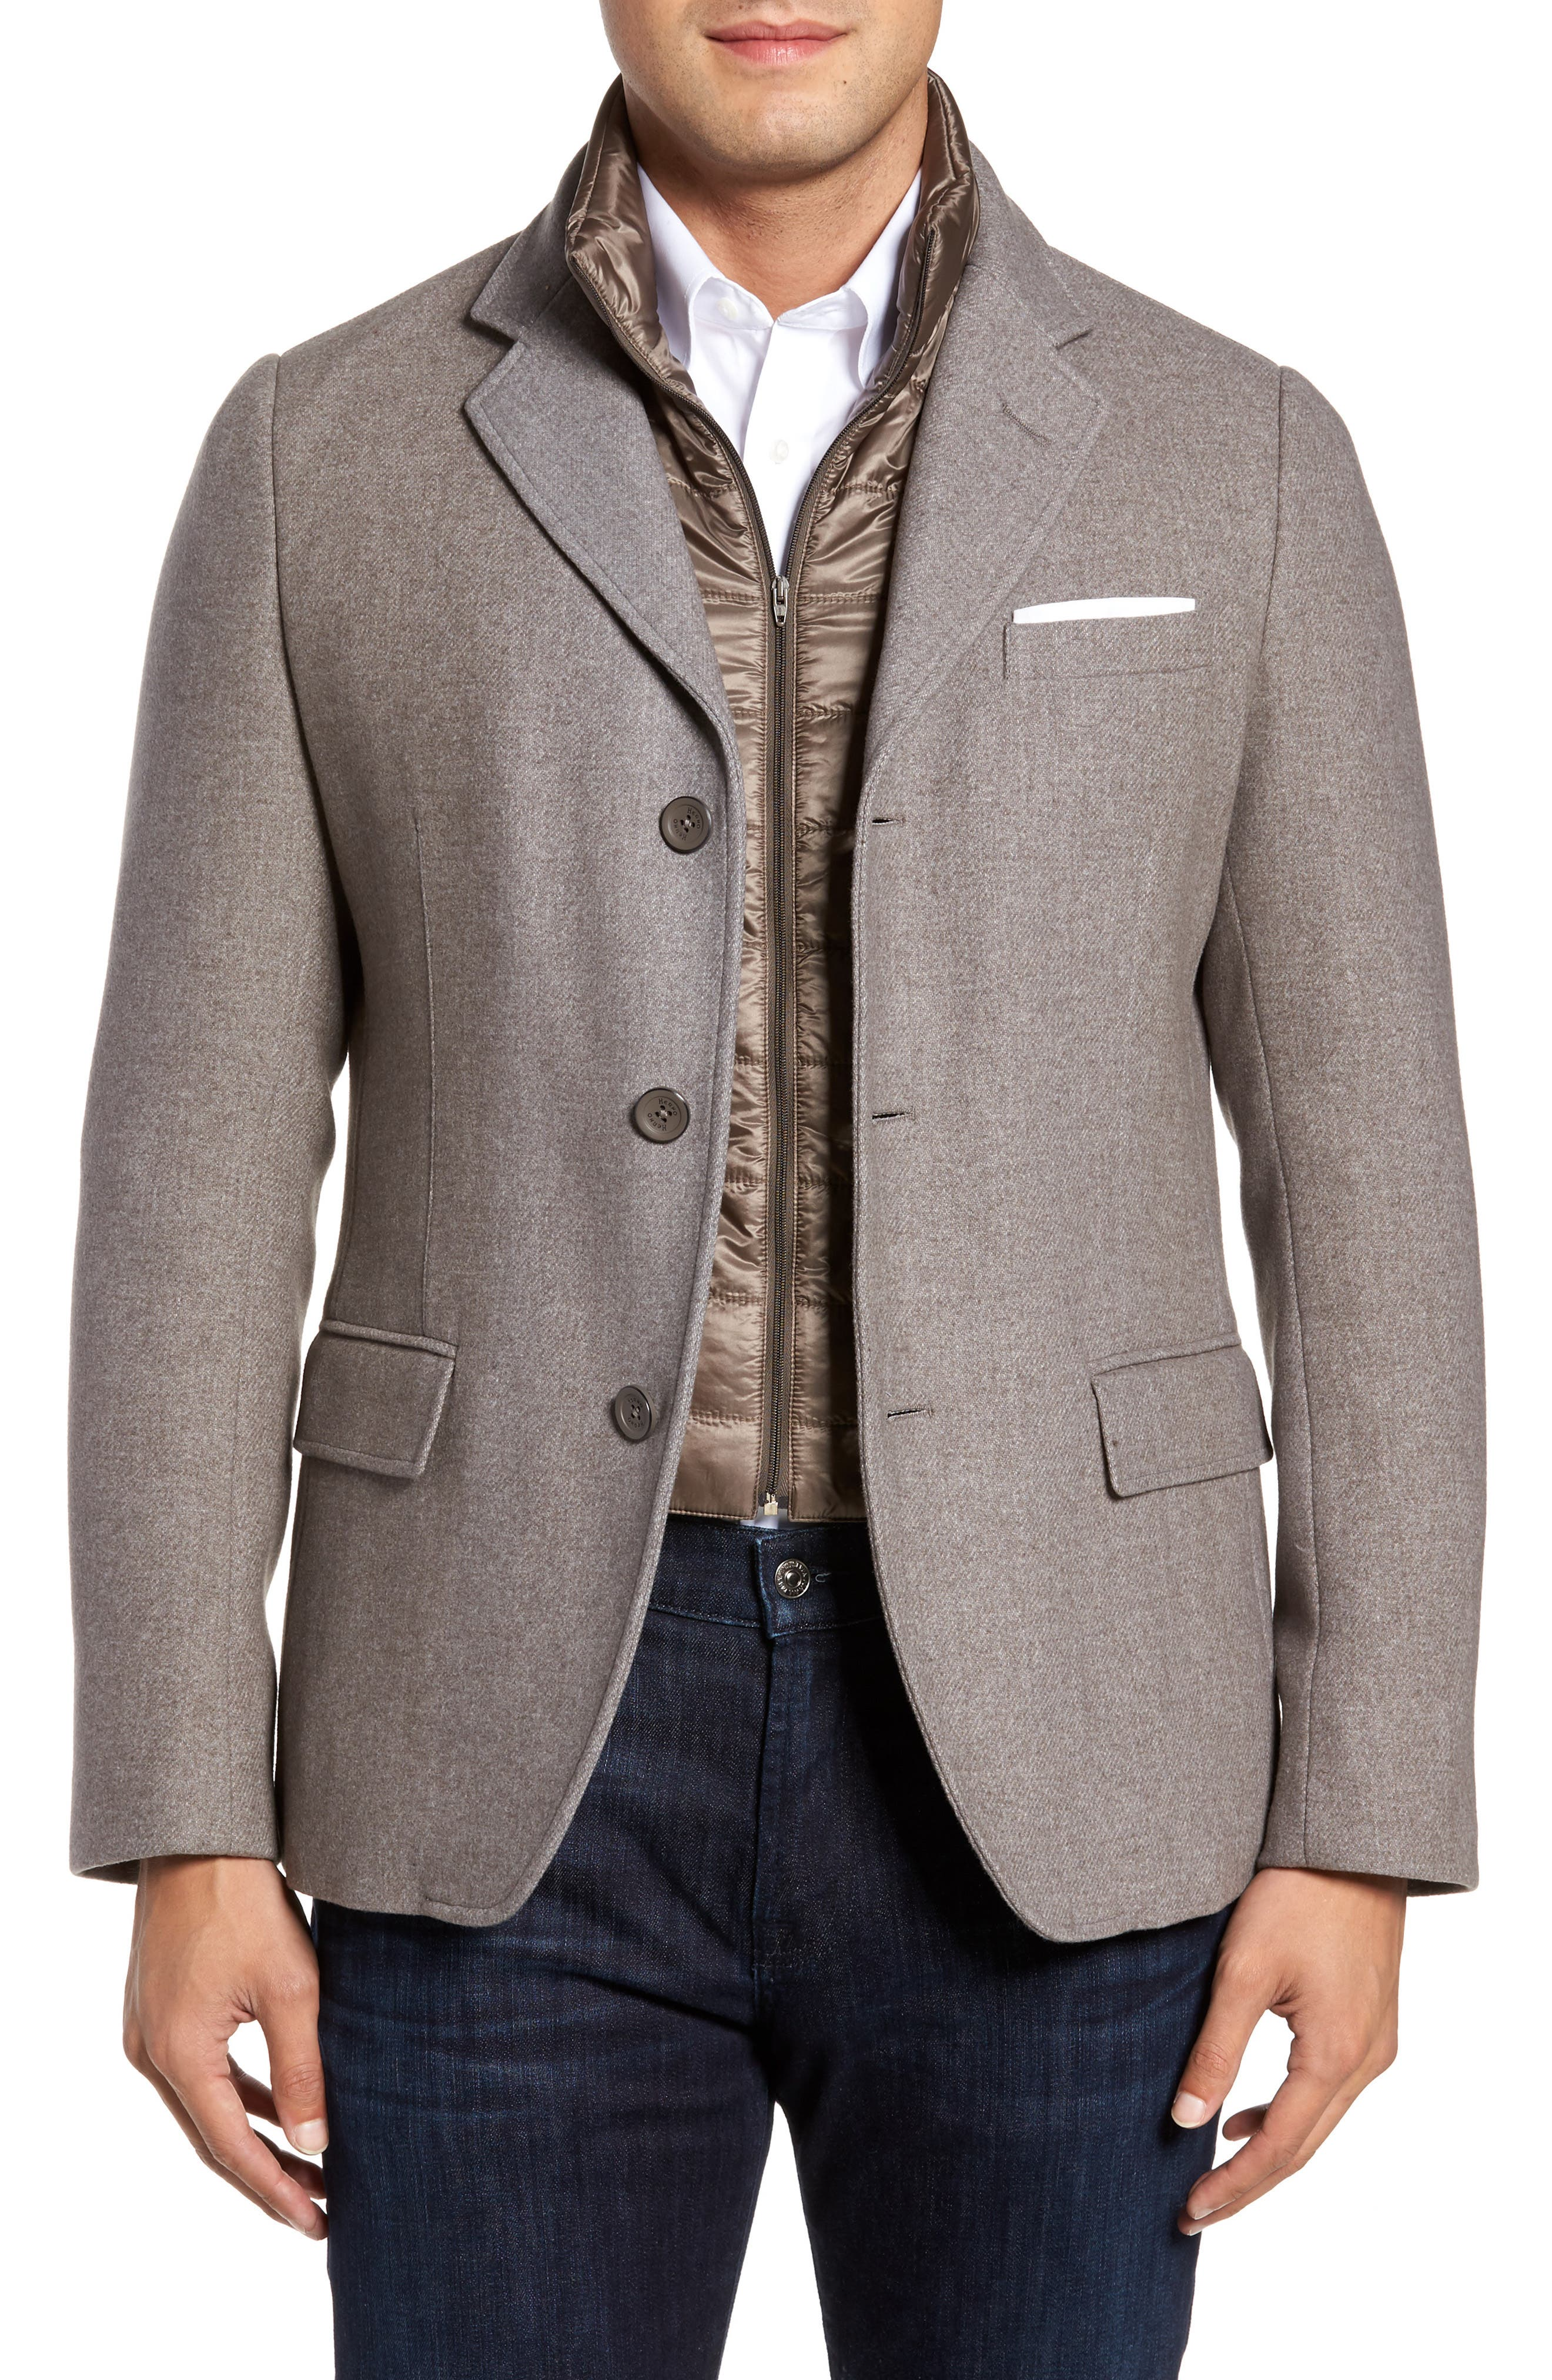 Wool Blend Blazer with Removable Quilted Bib,                             Main thumbnail 1, color,                             250